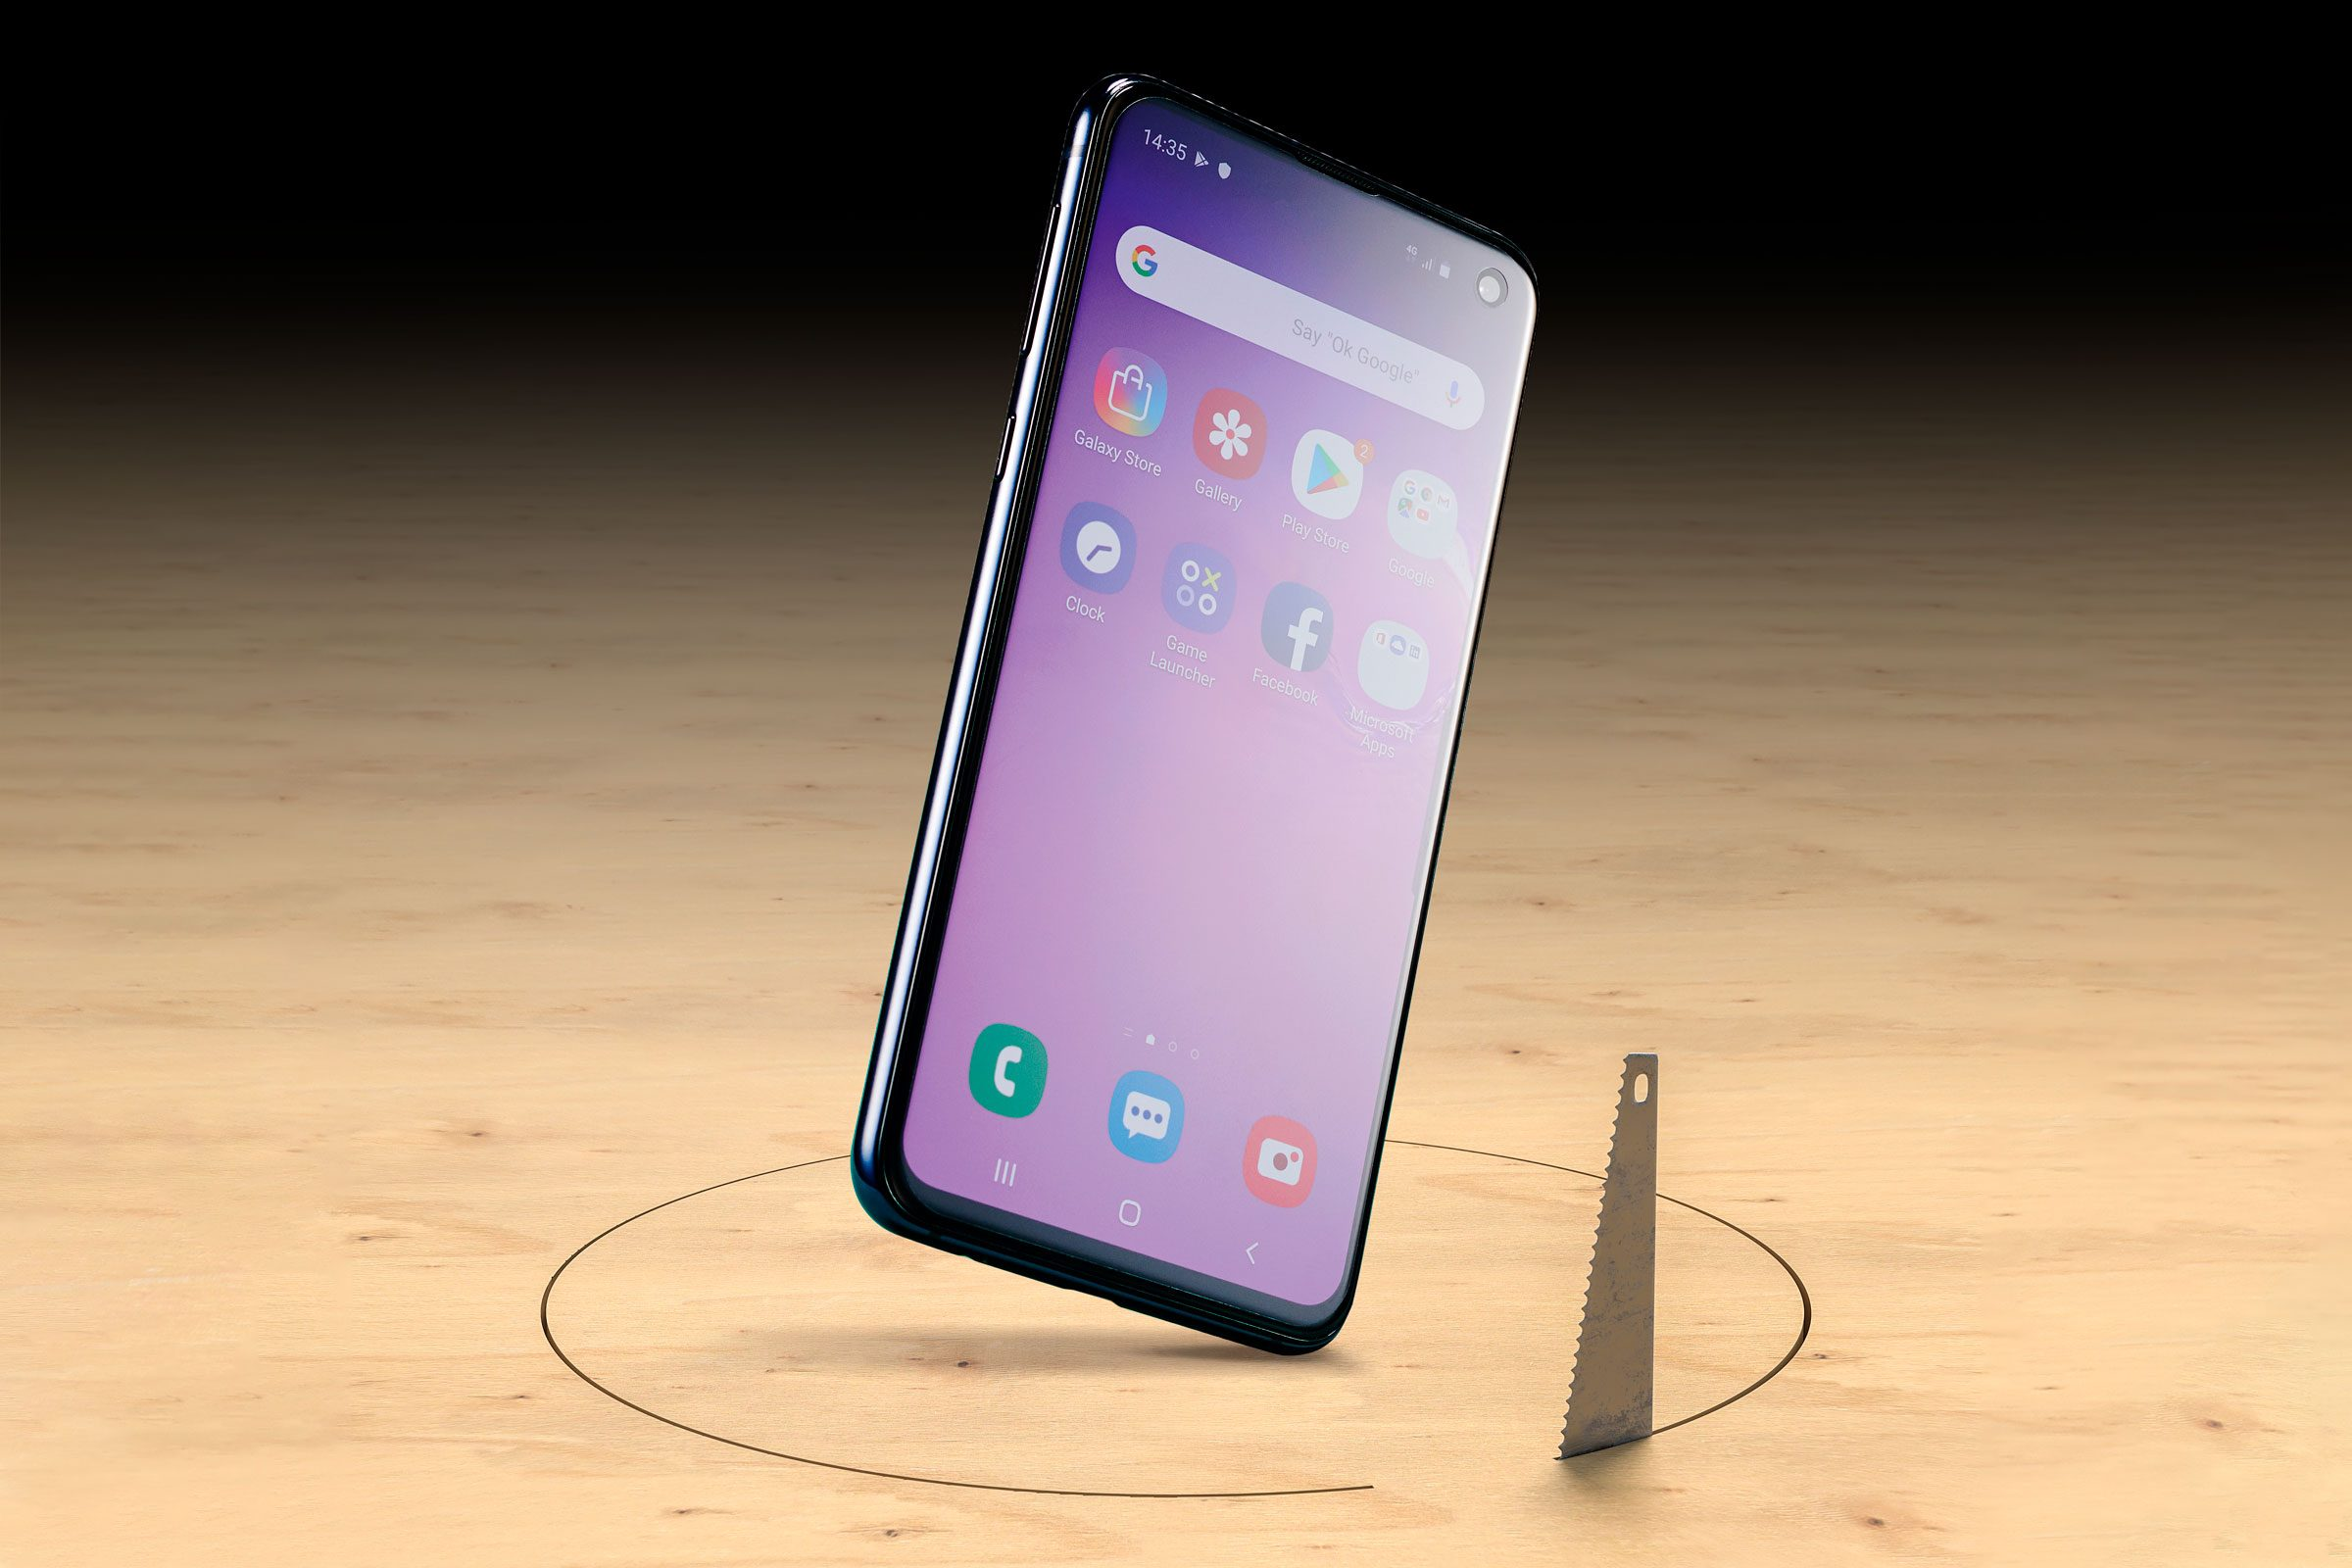 a smartphone stands on edge on wooden floor where a saw is cutting a circle around the floor from below